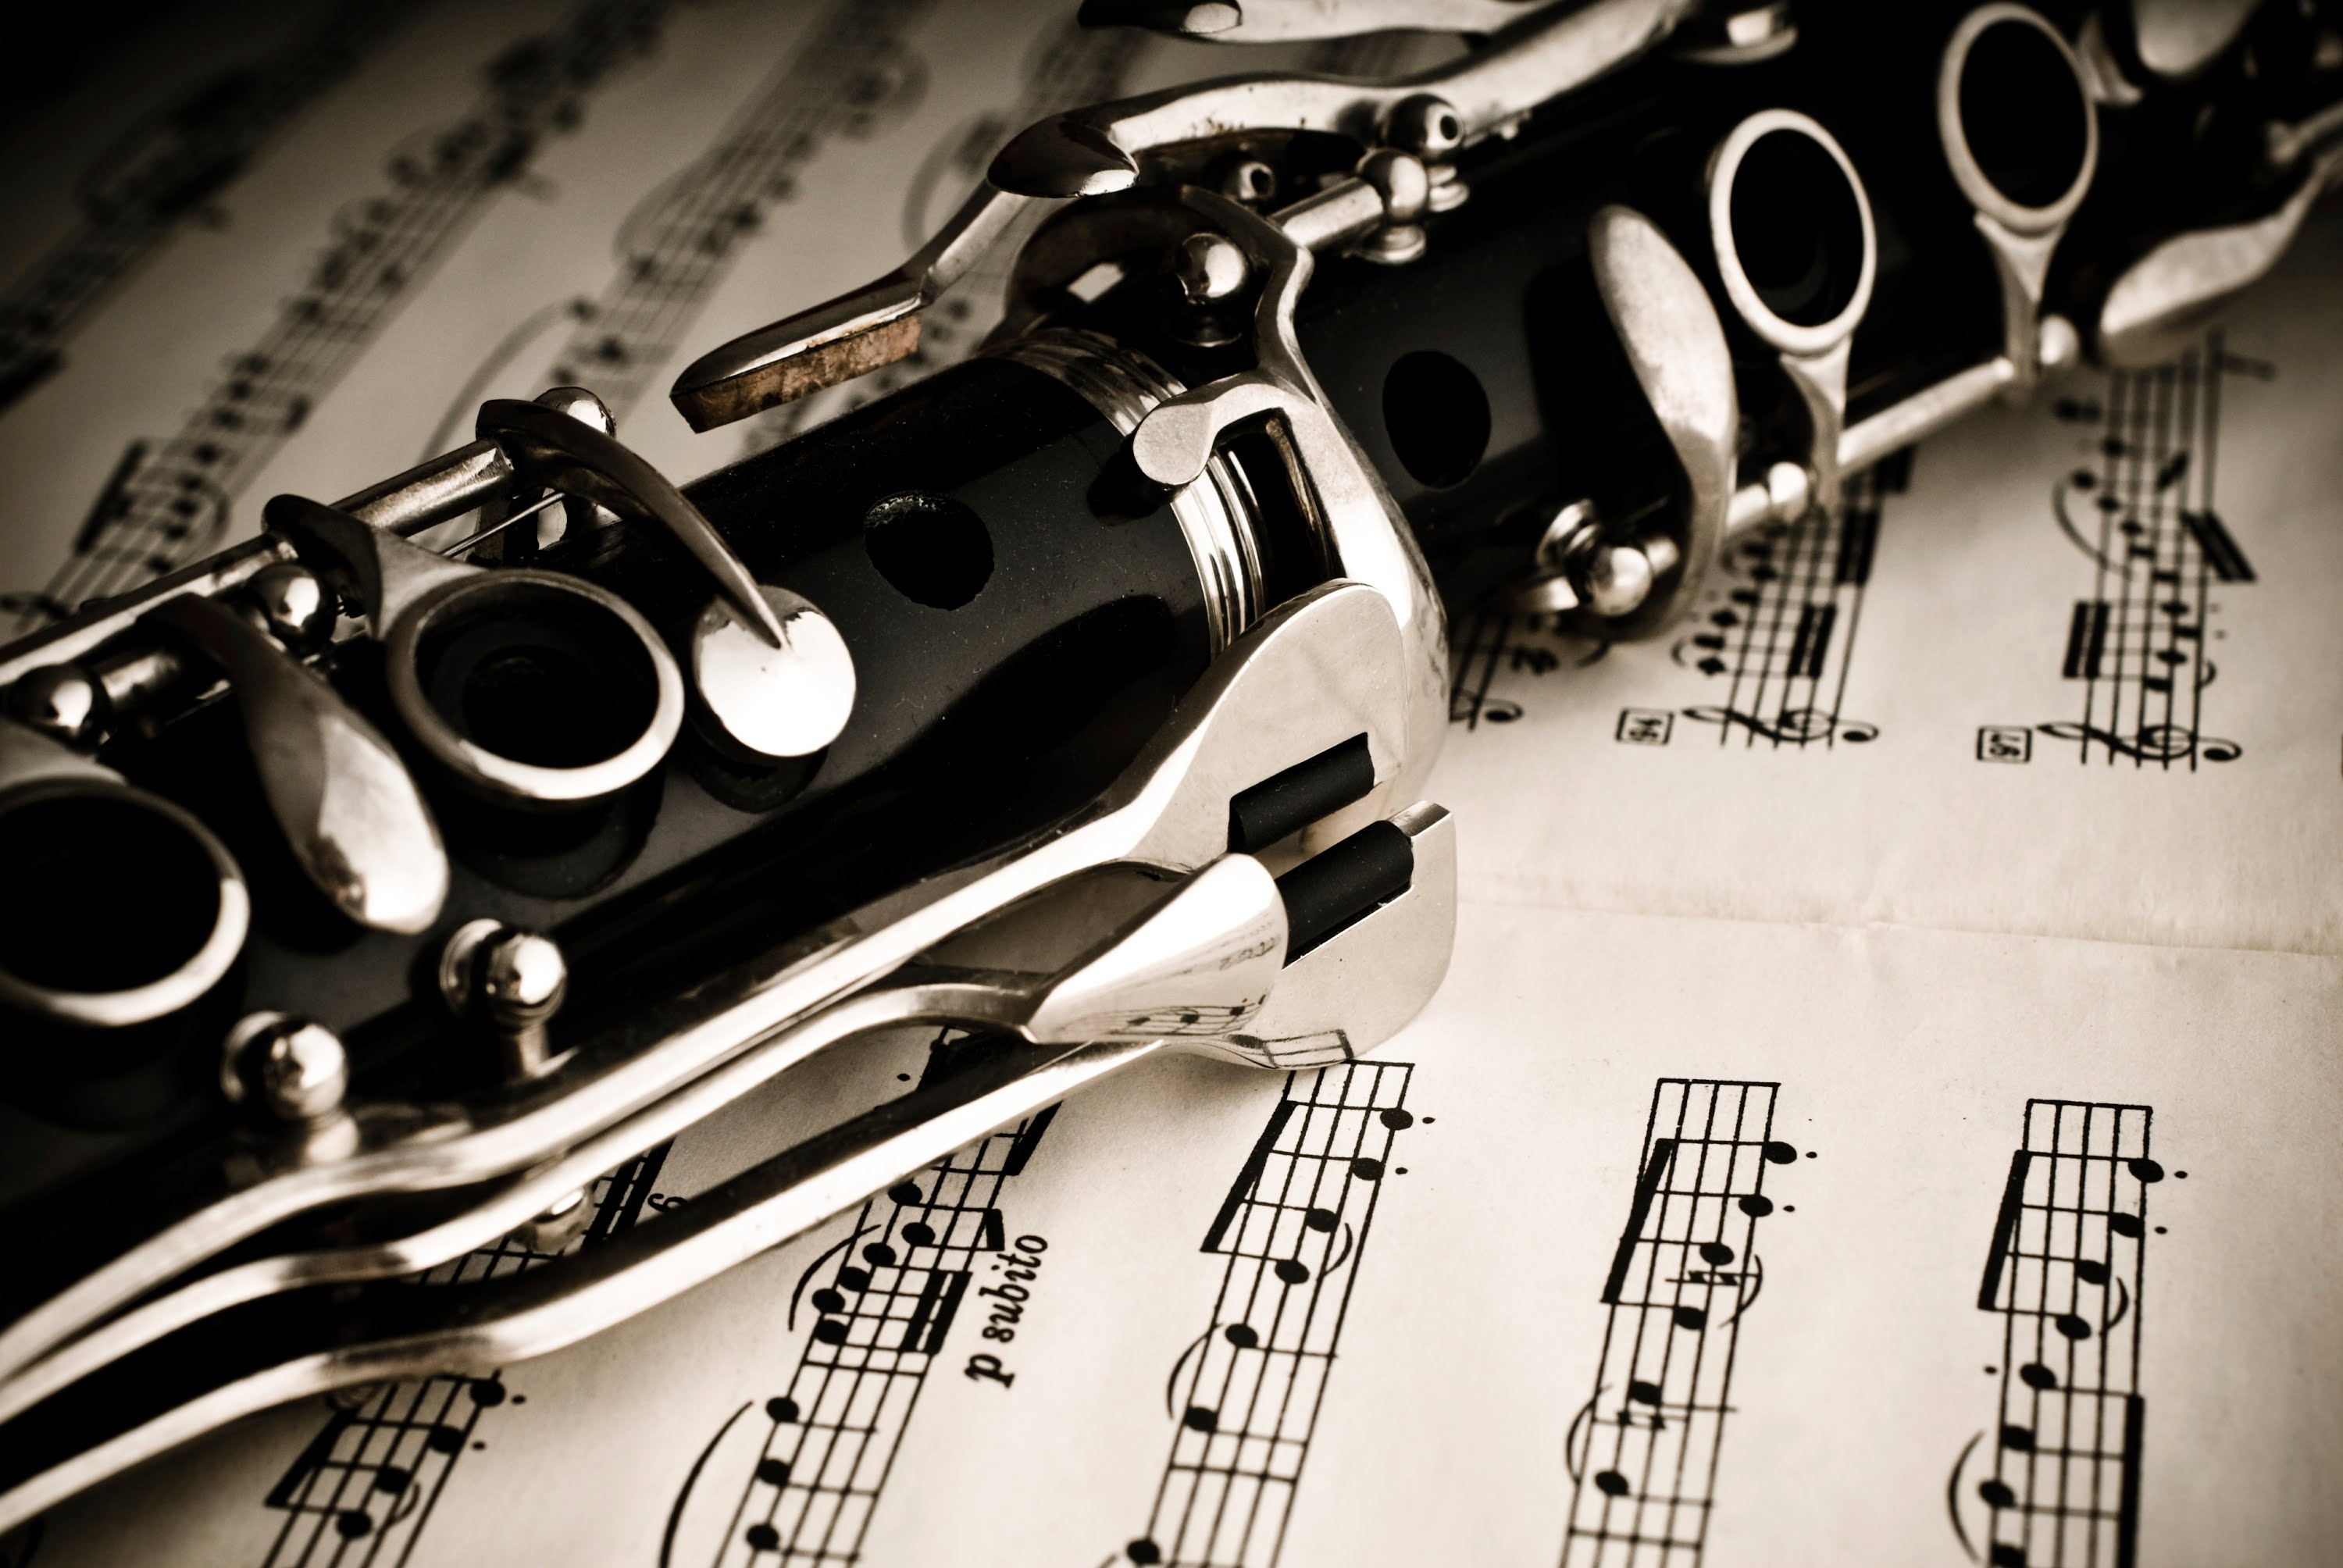 The Best Musical Hobbies For Kids